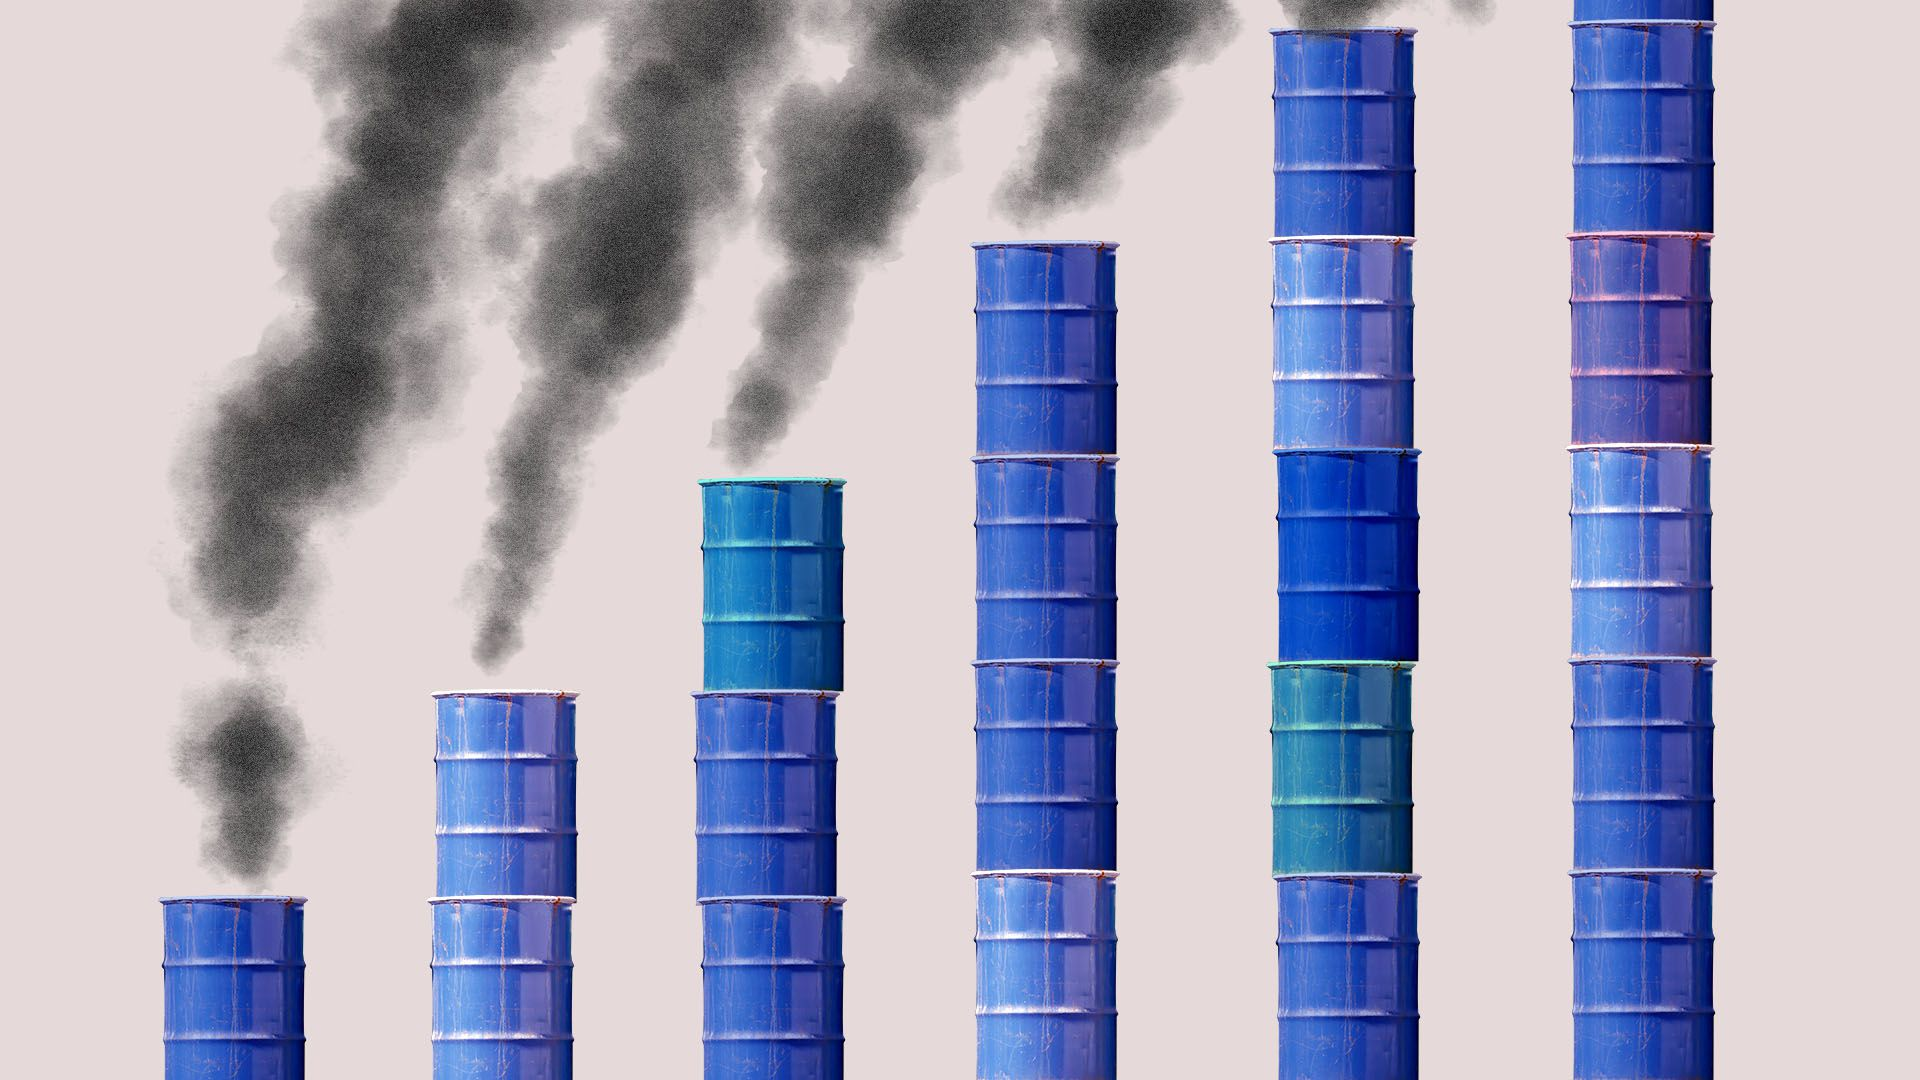 Illustration of increasing stacks of oil drums emitting smoke